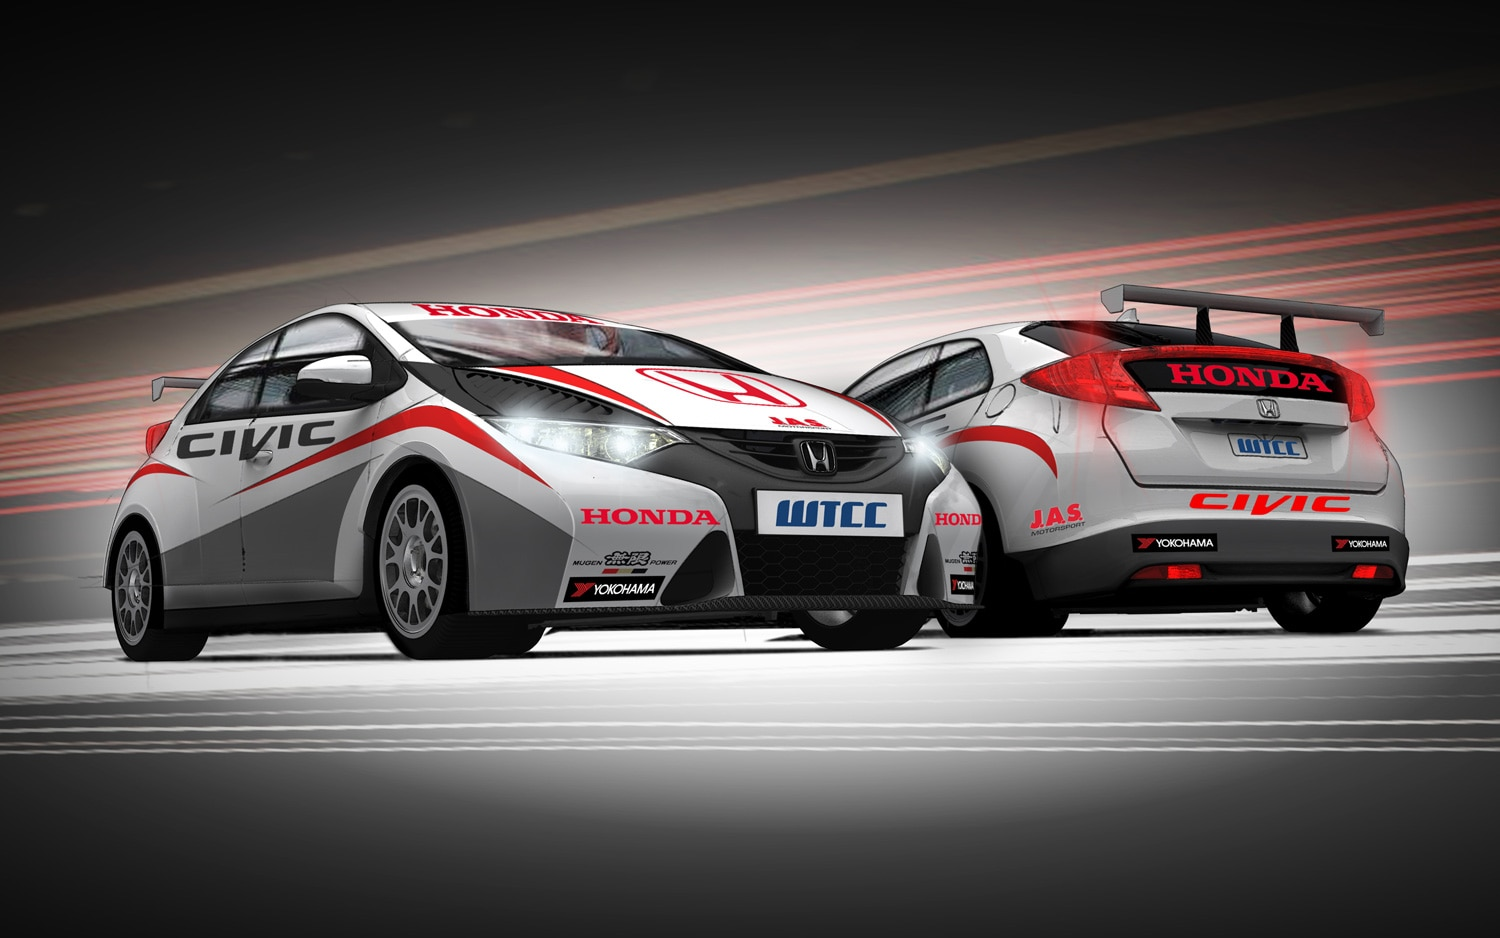 Honda reveals 1 6 liter turbo for touring car could it for Honda civic race car